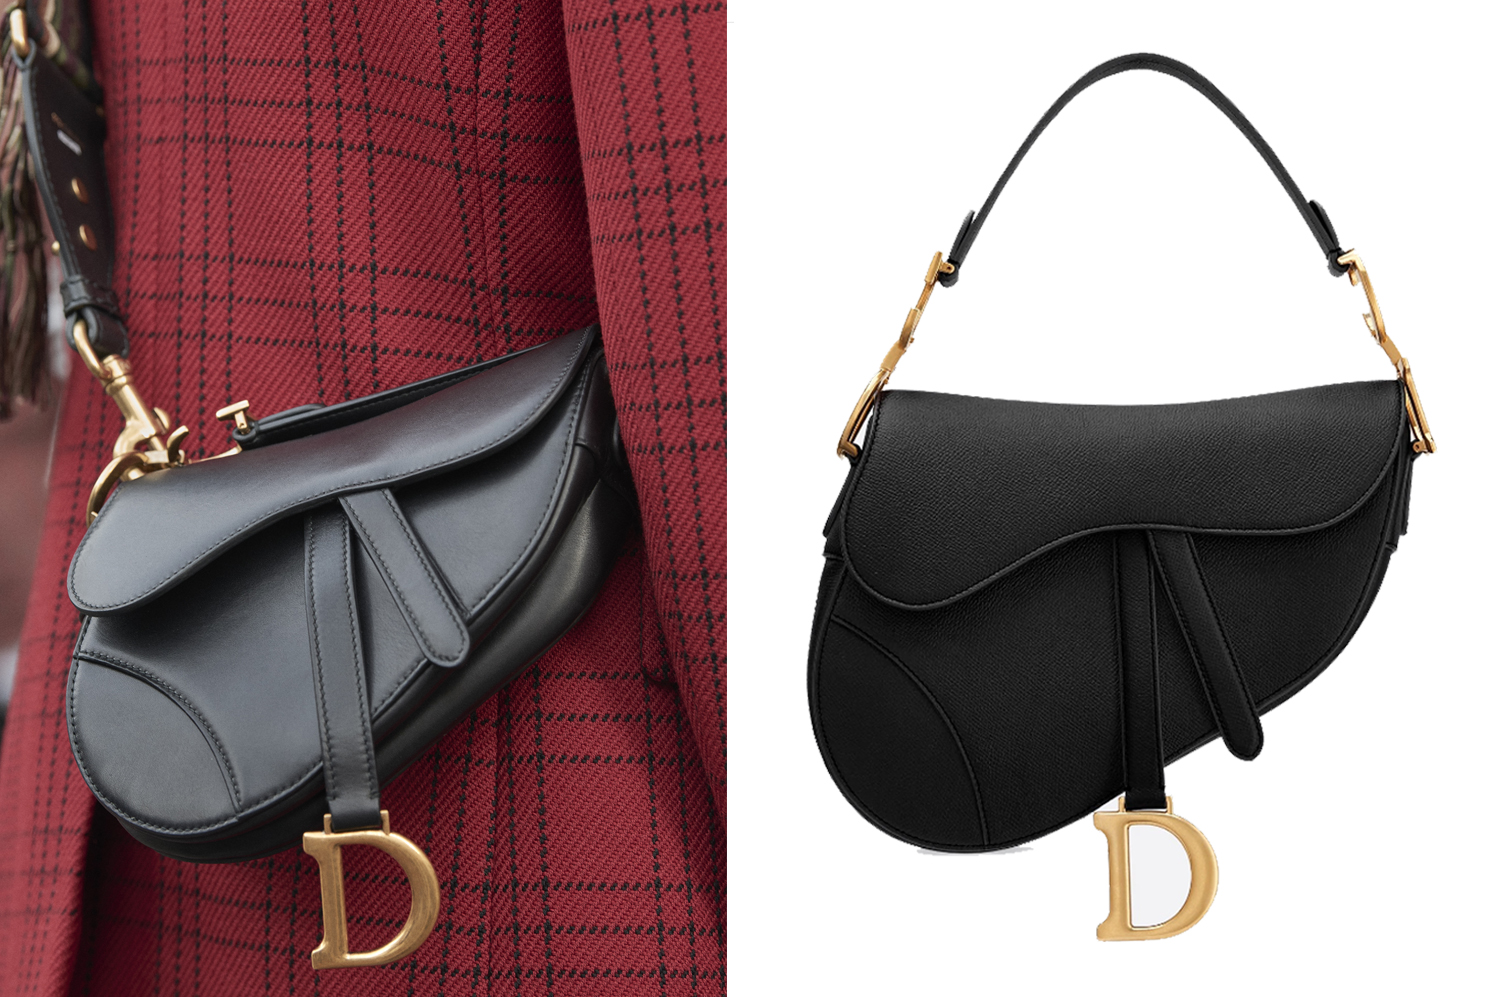 Dior saddle bag dupes